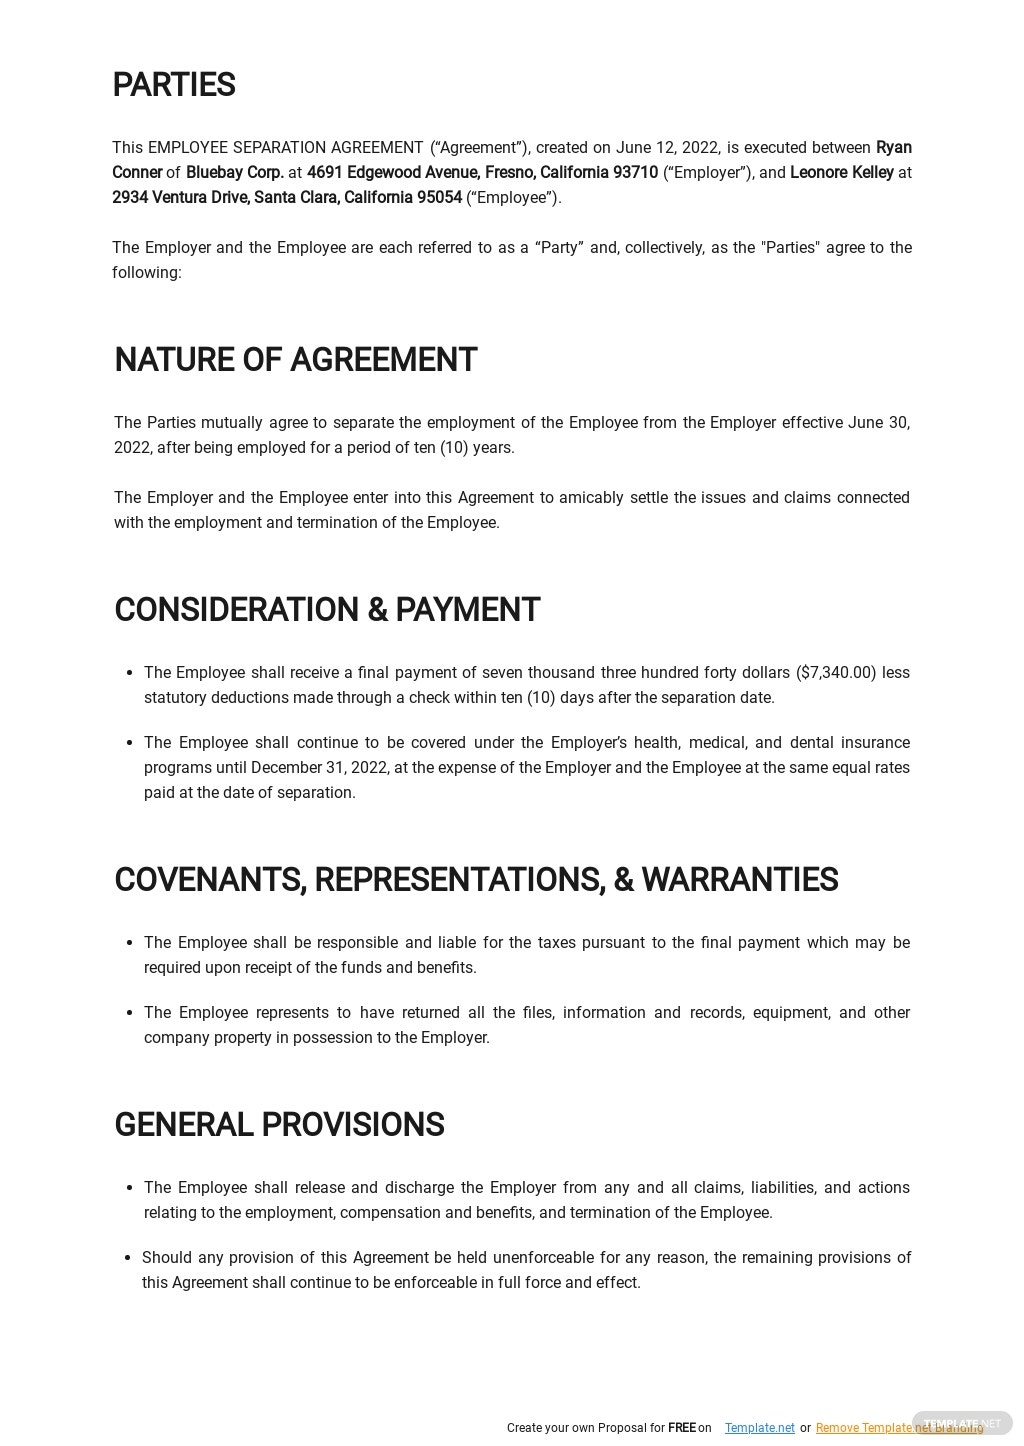 Simple Employee Separation Agreement Template 1.jpe